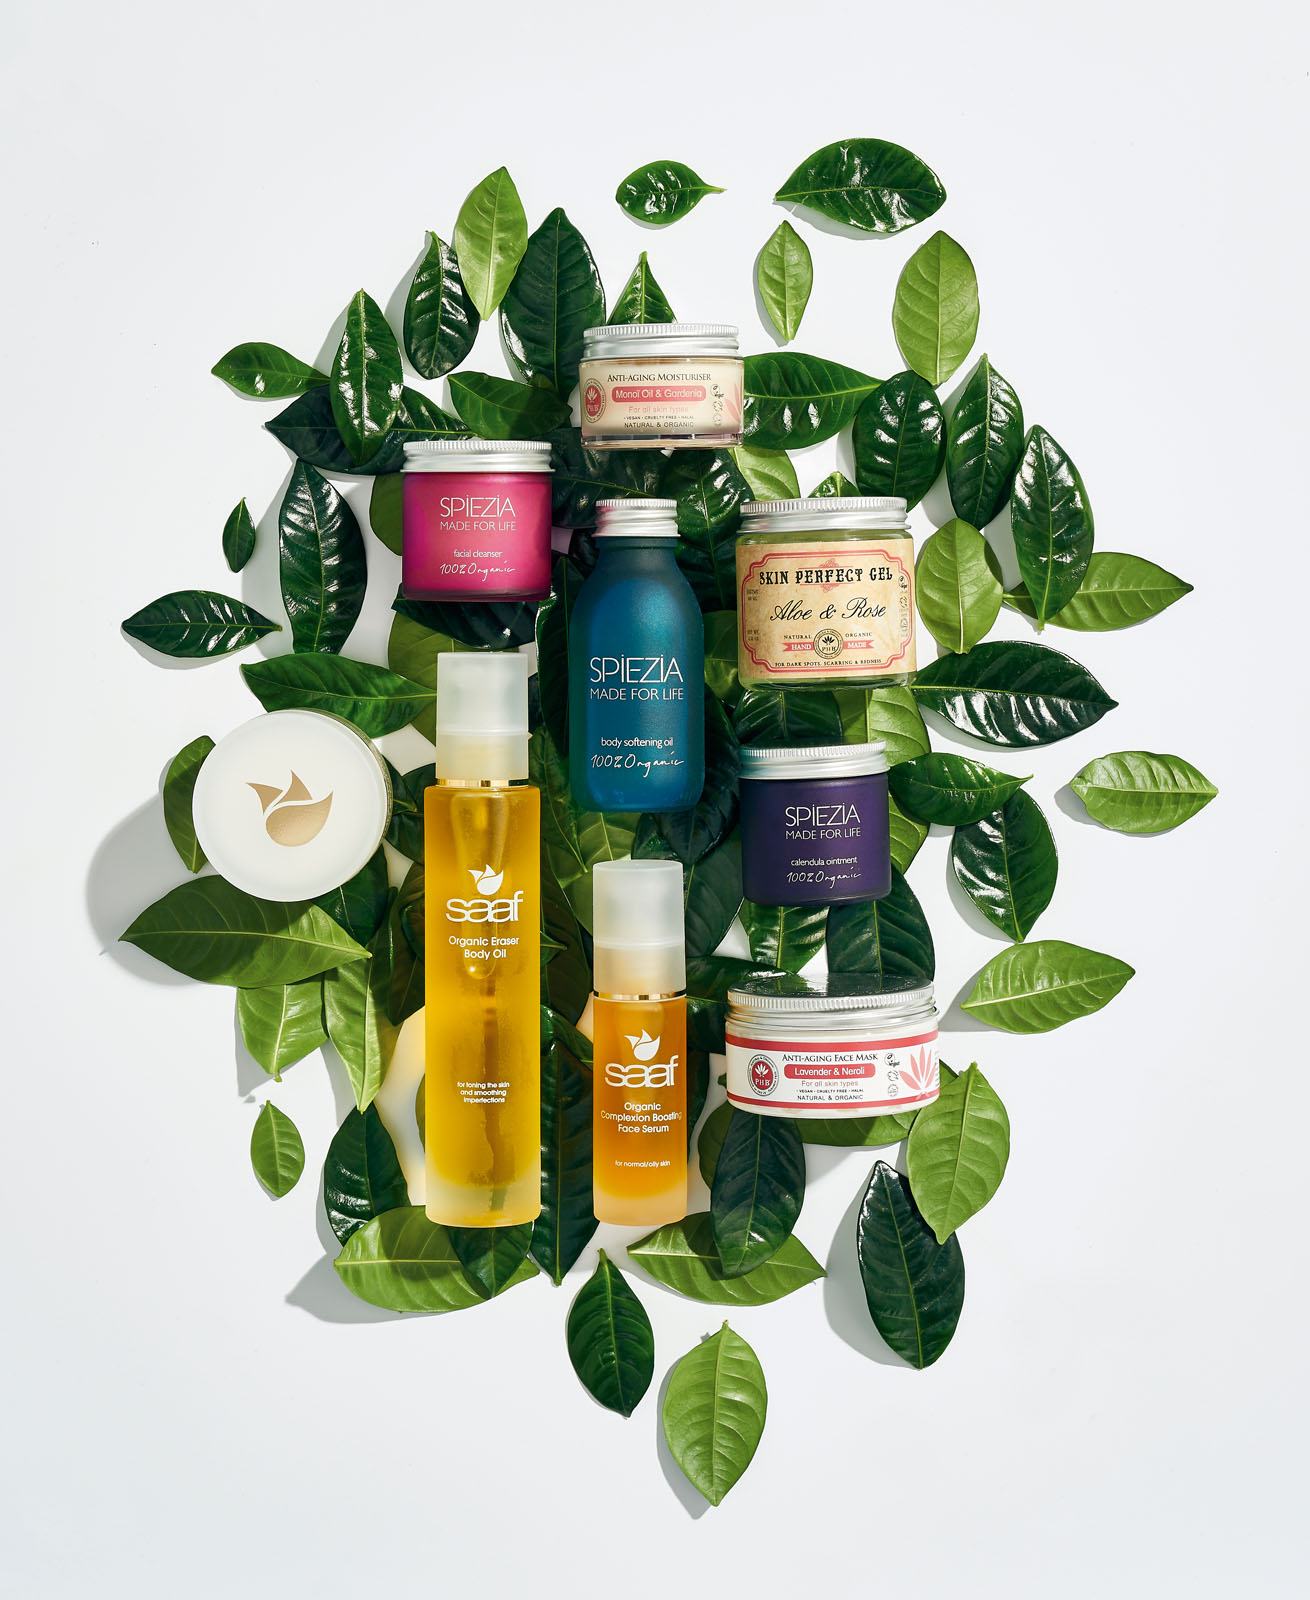 Beauty products on leaves 2